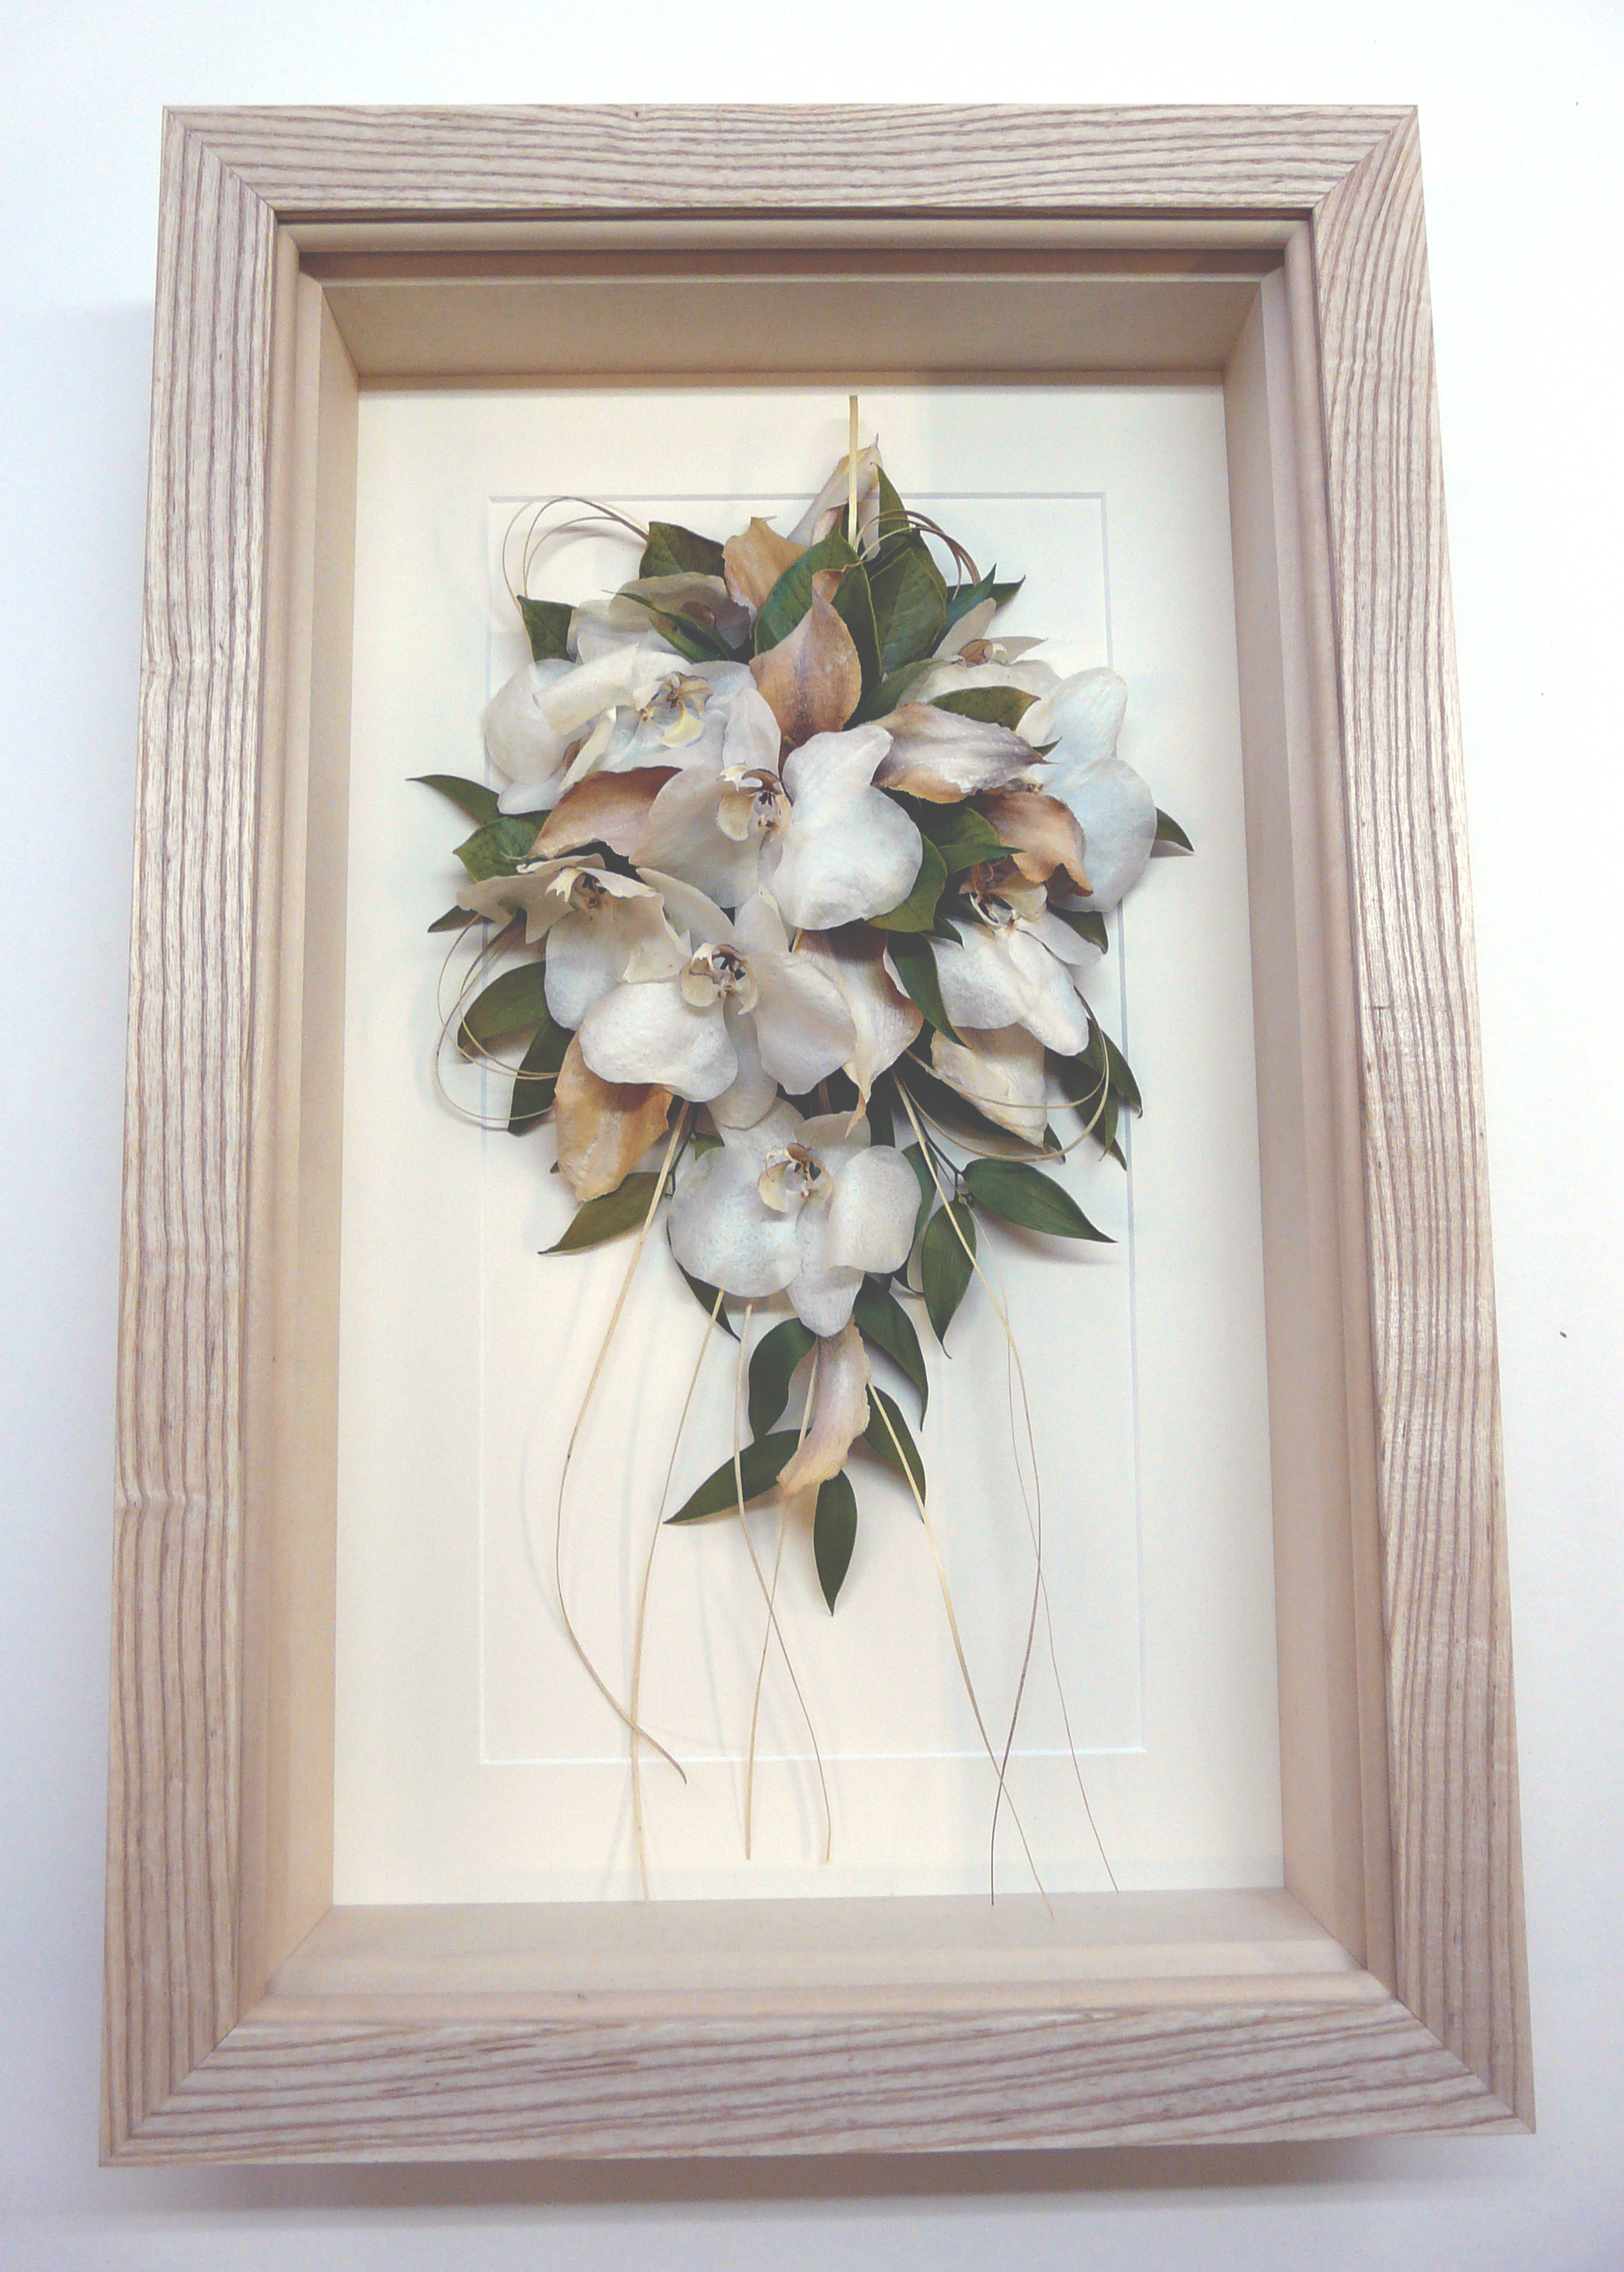 Framing And Preserving A Wedding Bouquet Simon Robinson Son